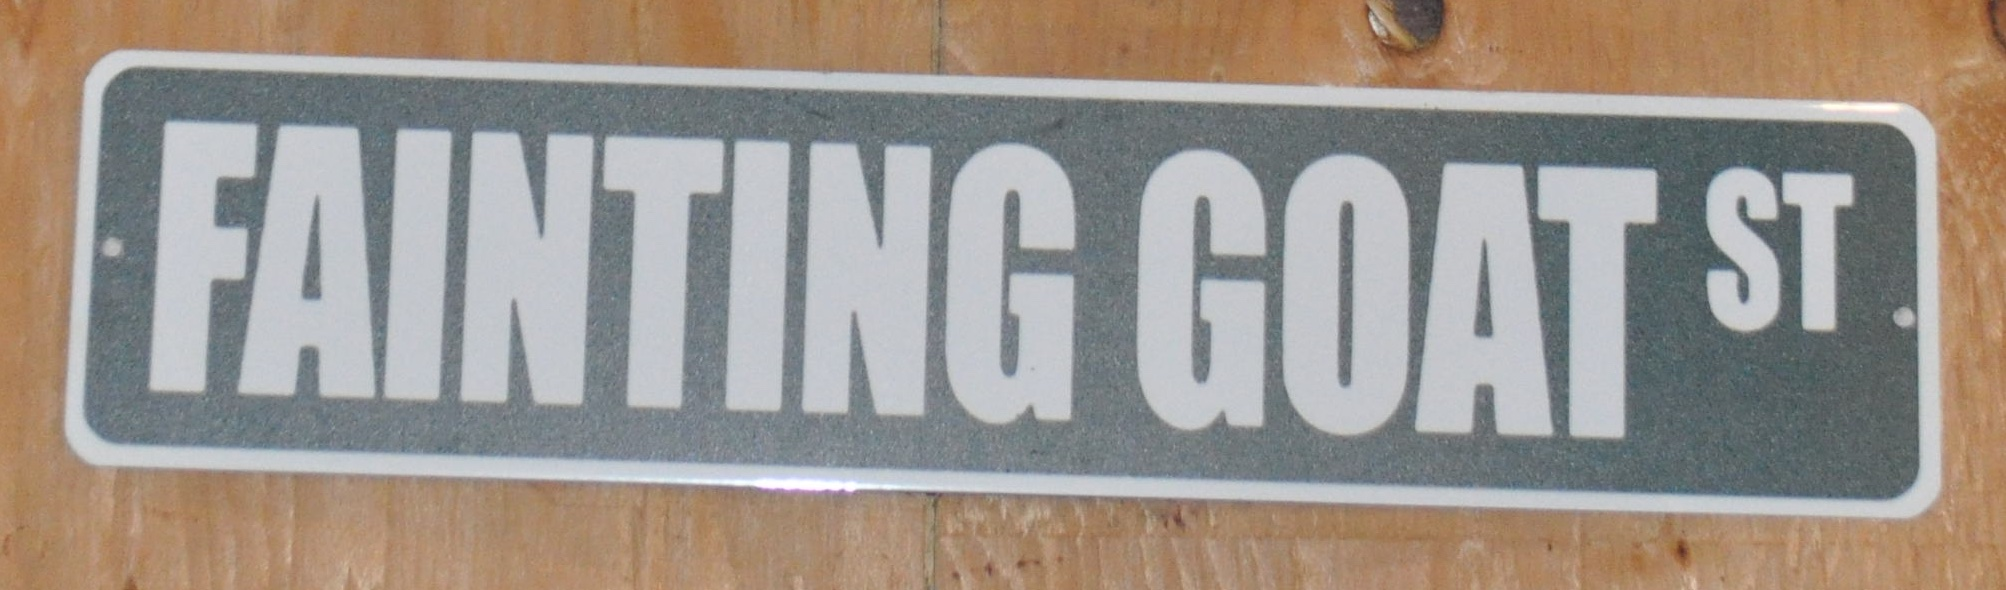 Fainting Goat St Sign Only.jpg